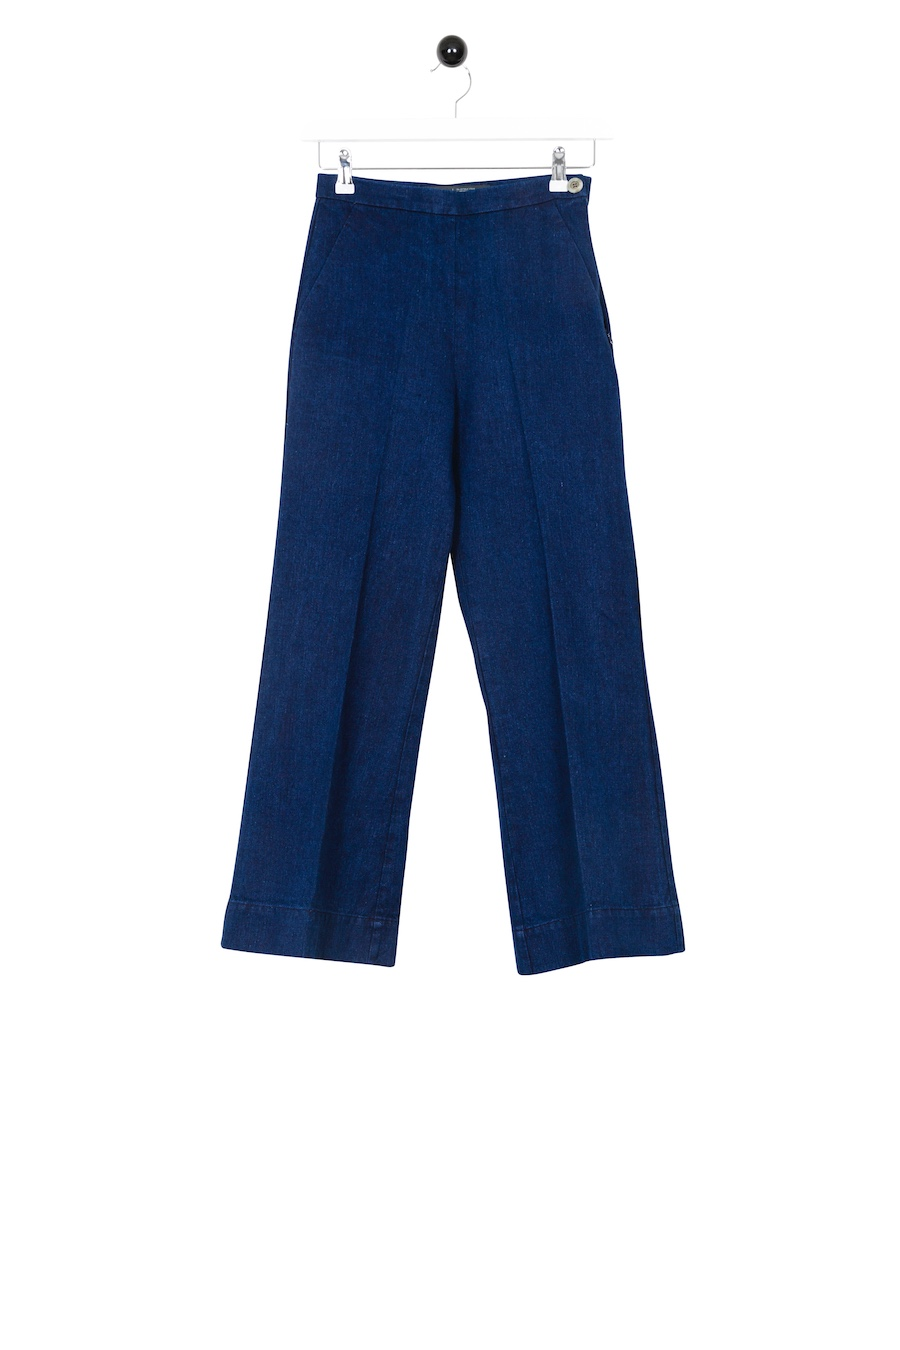 Kobolt Trousers Wide